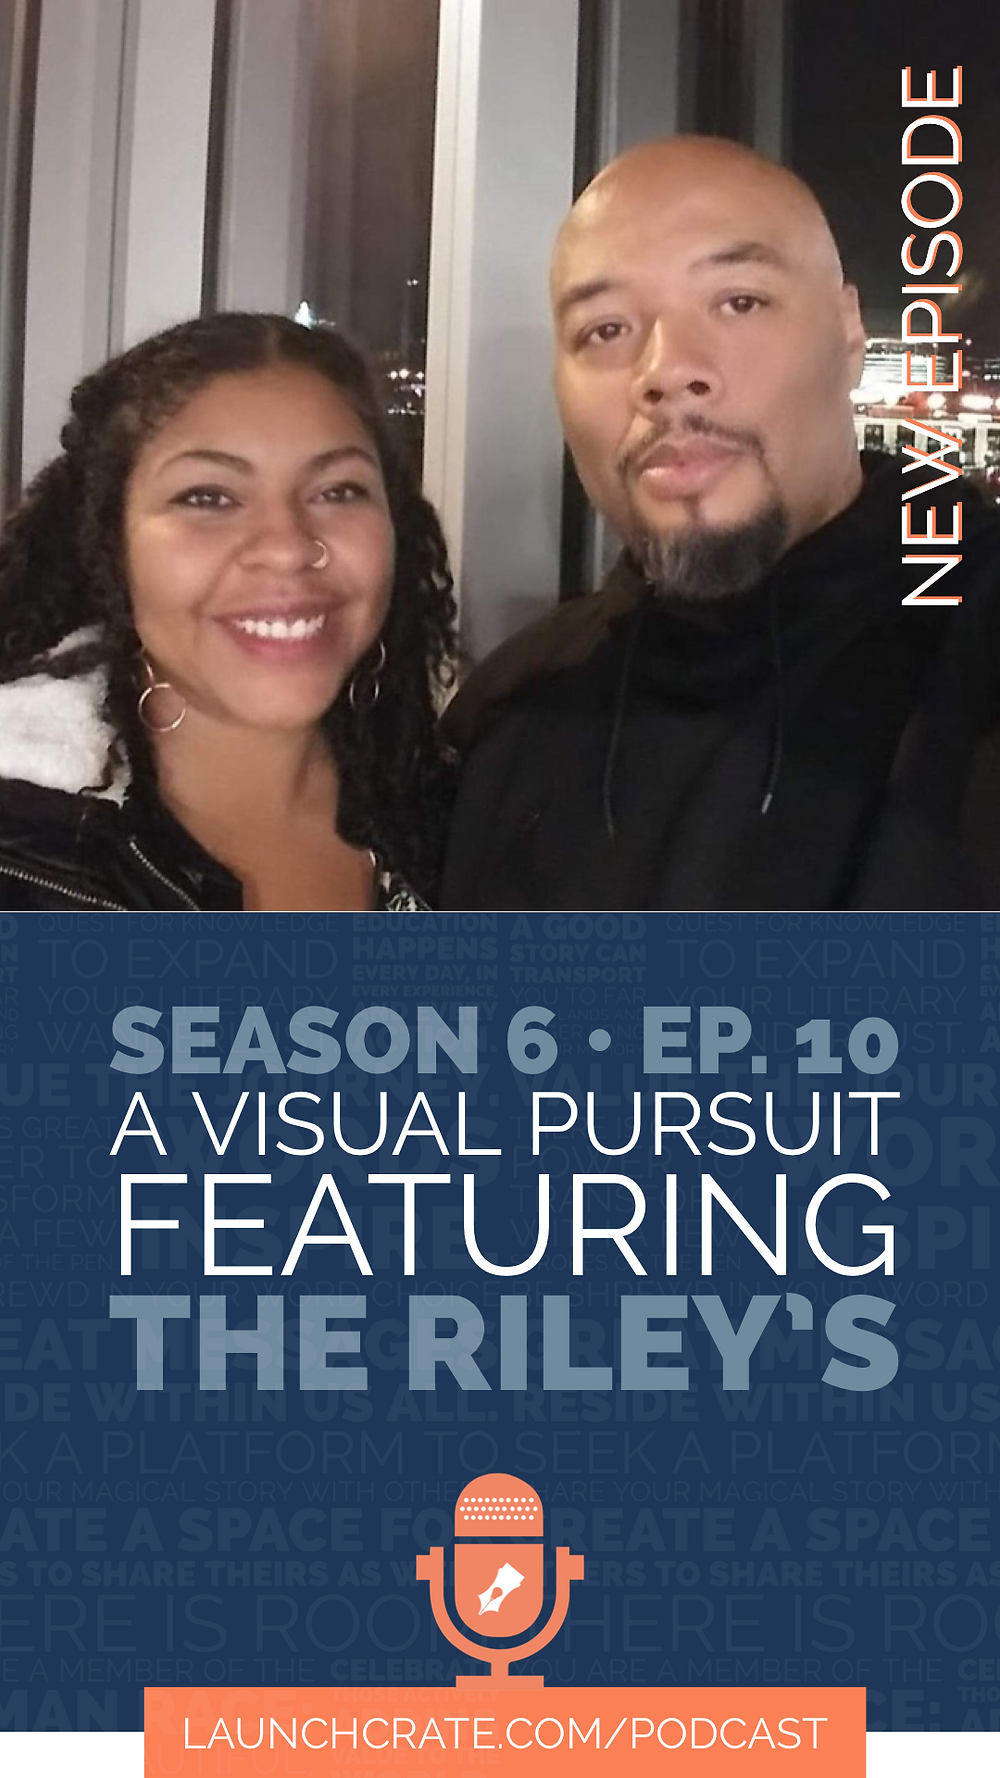 Podcast Season 6, Episode 10. with Shawn and Maria Riley